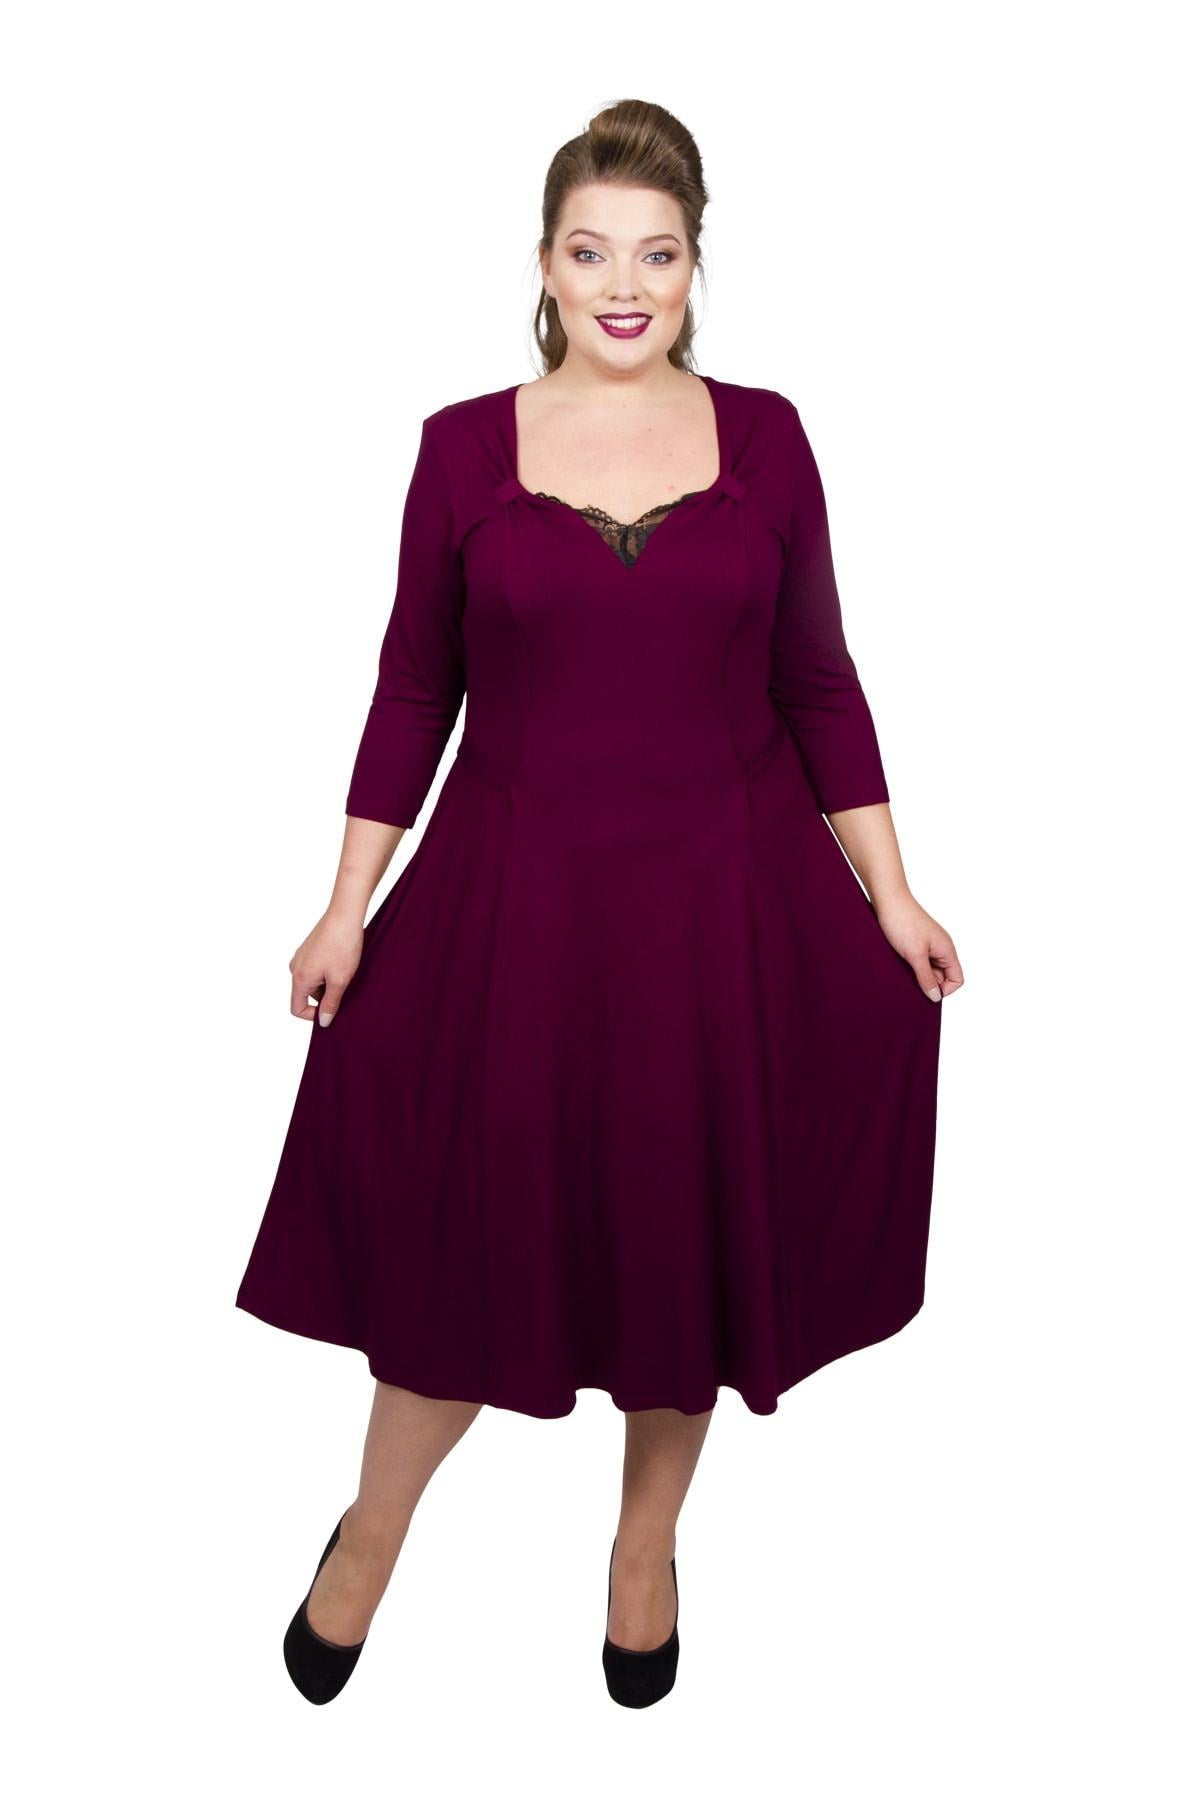 1940s Plus Size Dresses | Swing Dress, Tea Dress Lace Sweetheart Tab 40s Dress - Burgundy  16 £55.00 AT vintagedancer.com